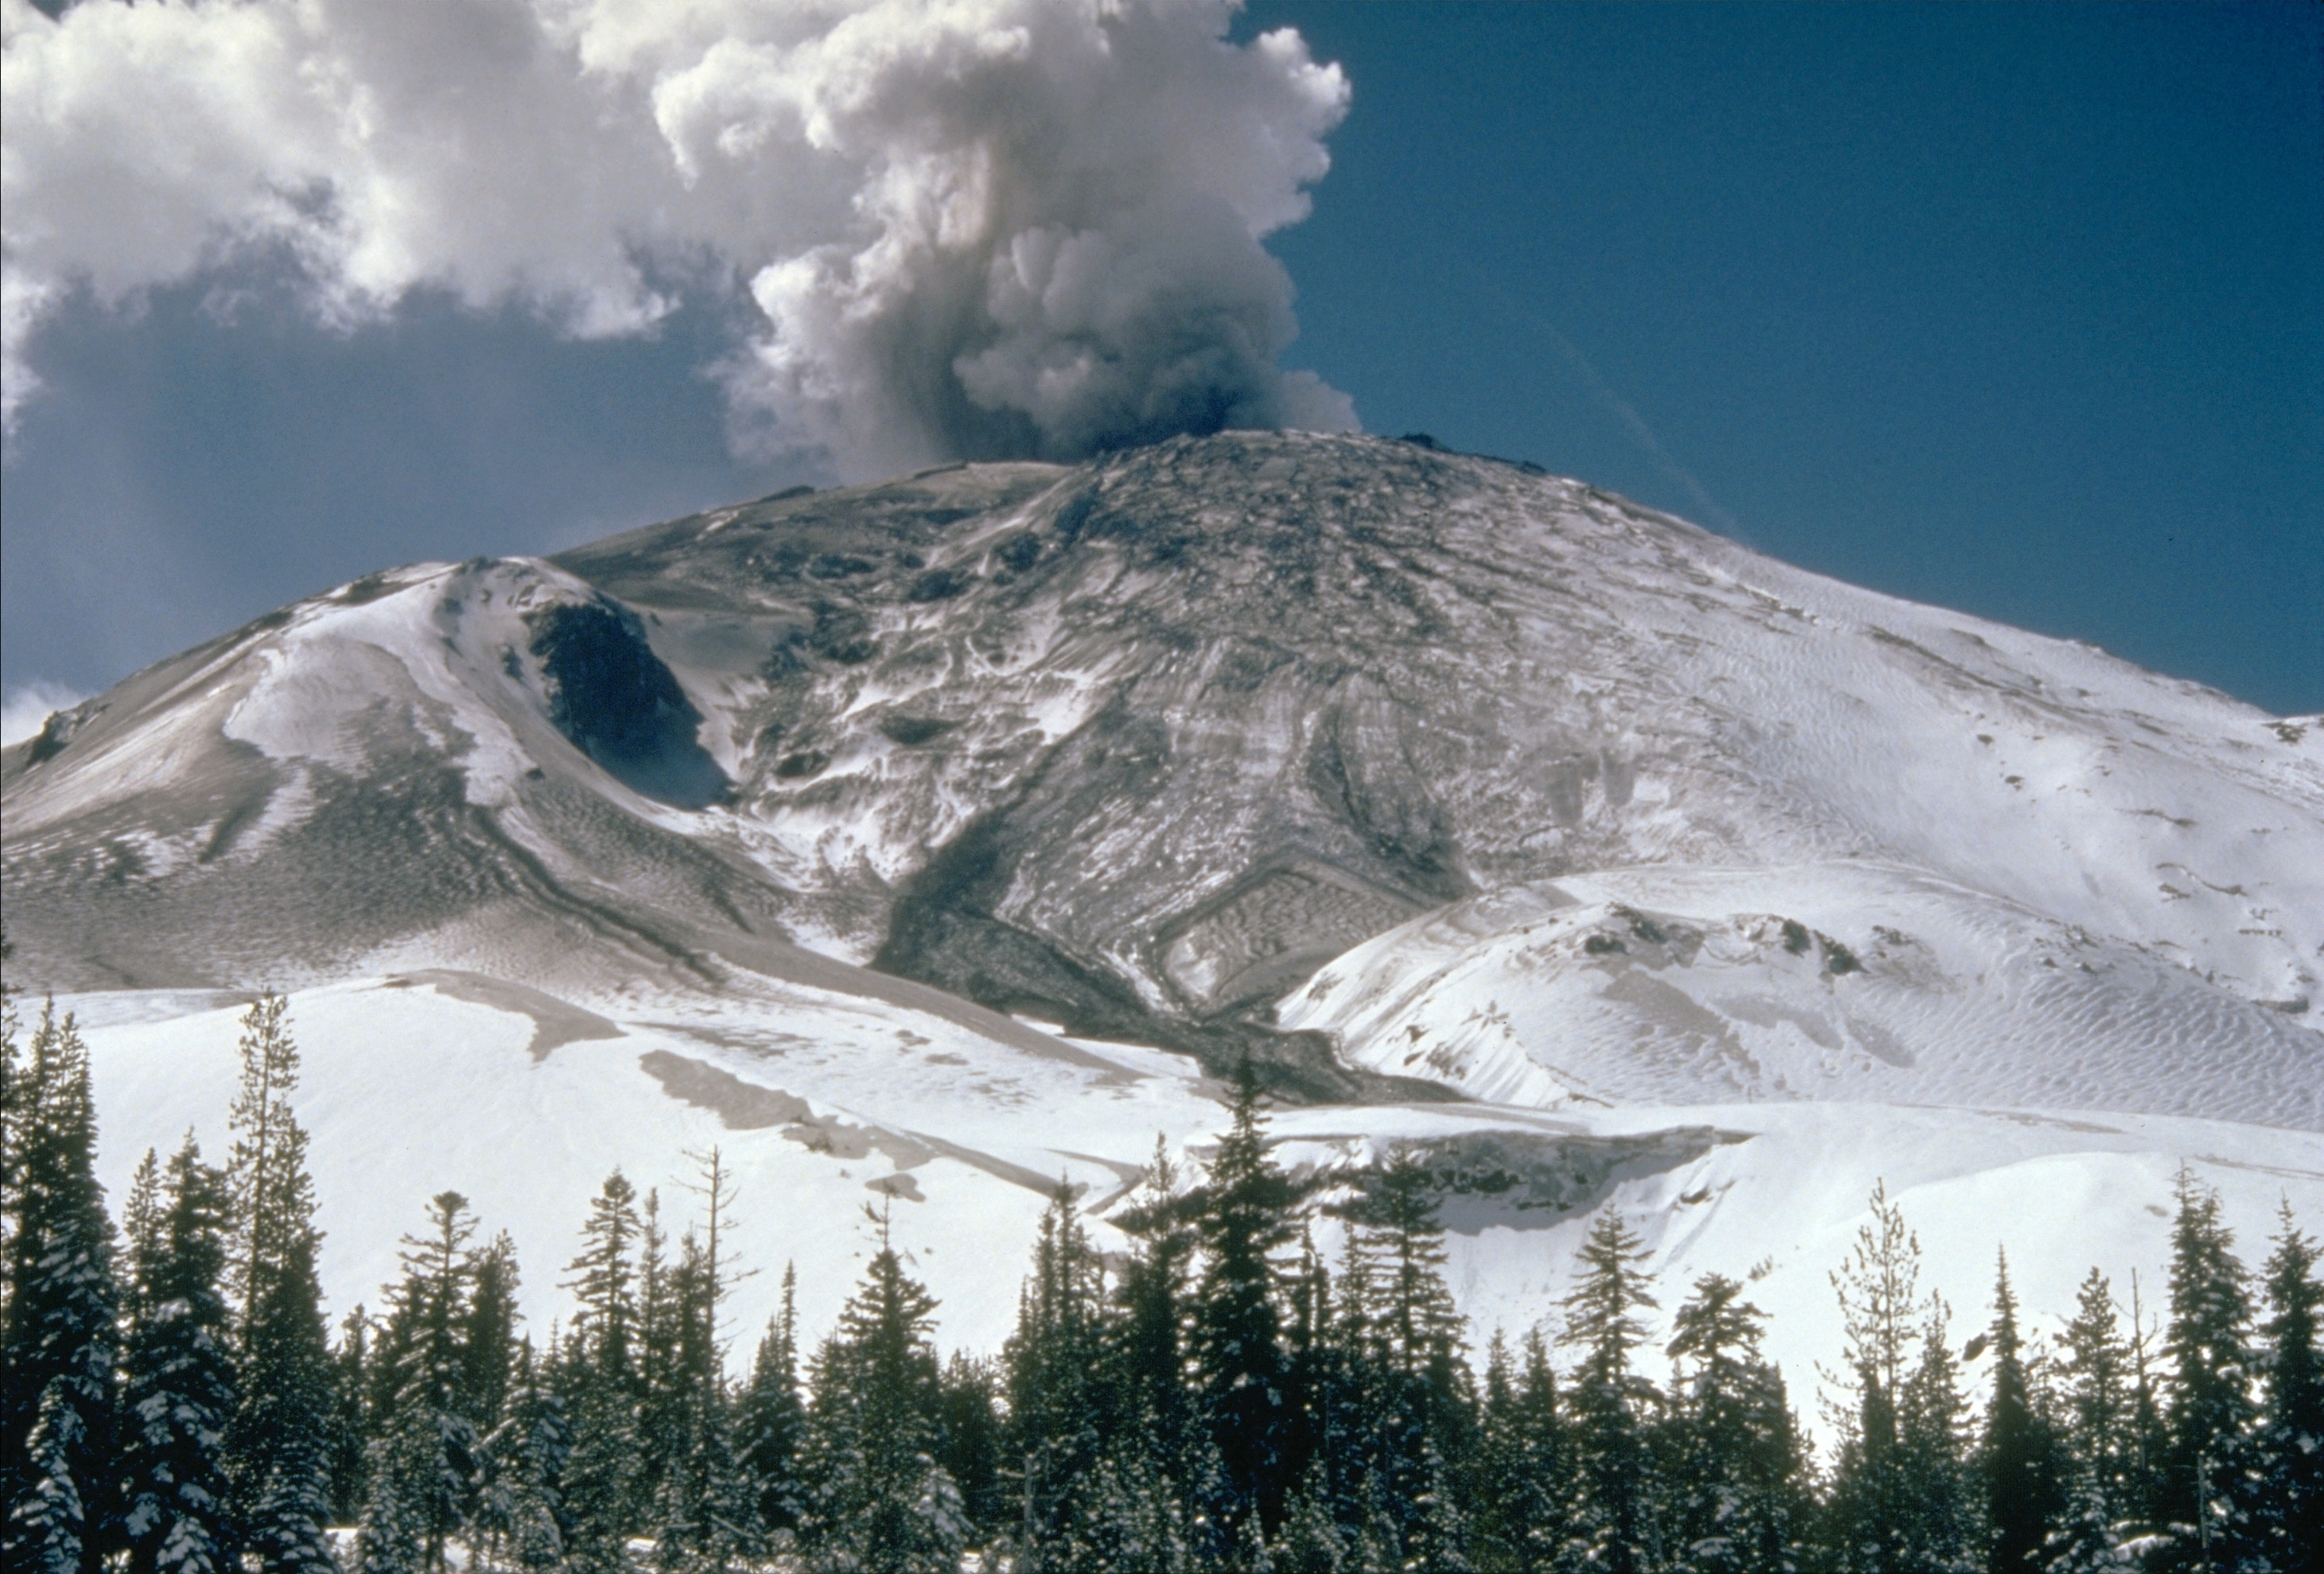 http://upload.wikimedia.org/wikipedia/commons/7/7d/MSH80_early_eruption_st_helens_from_NE_04-10-80.jpg